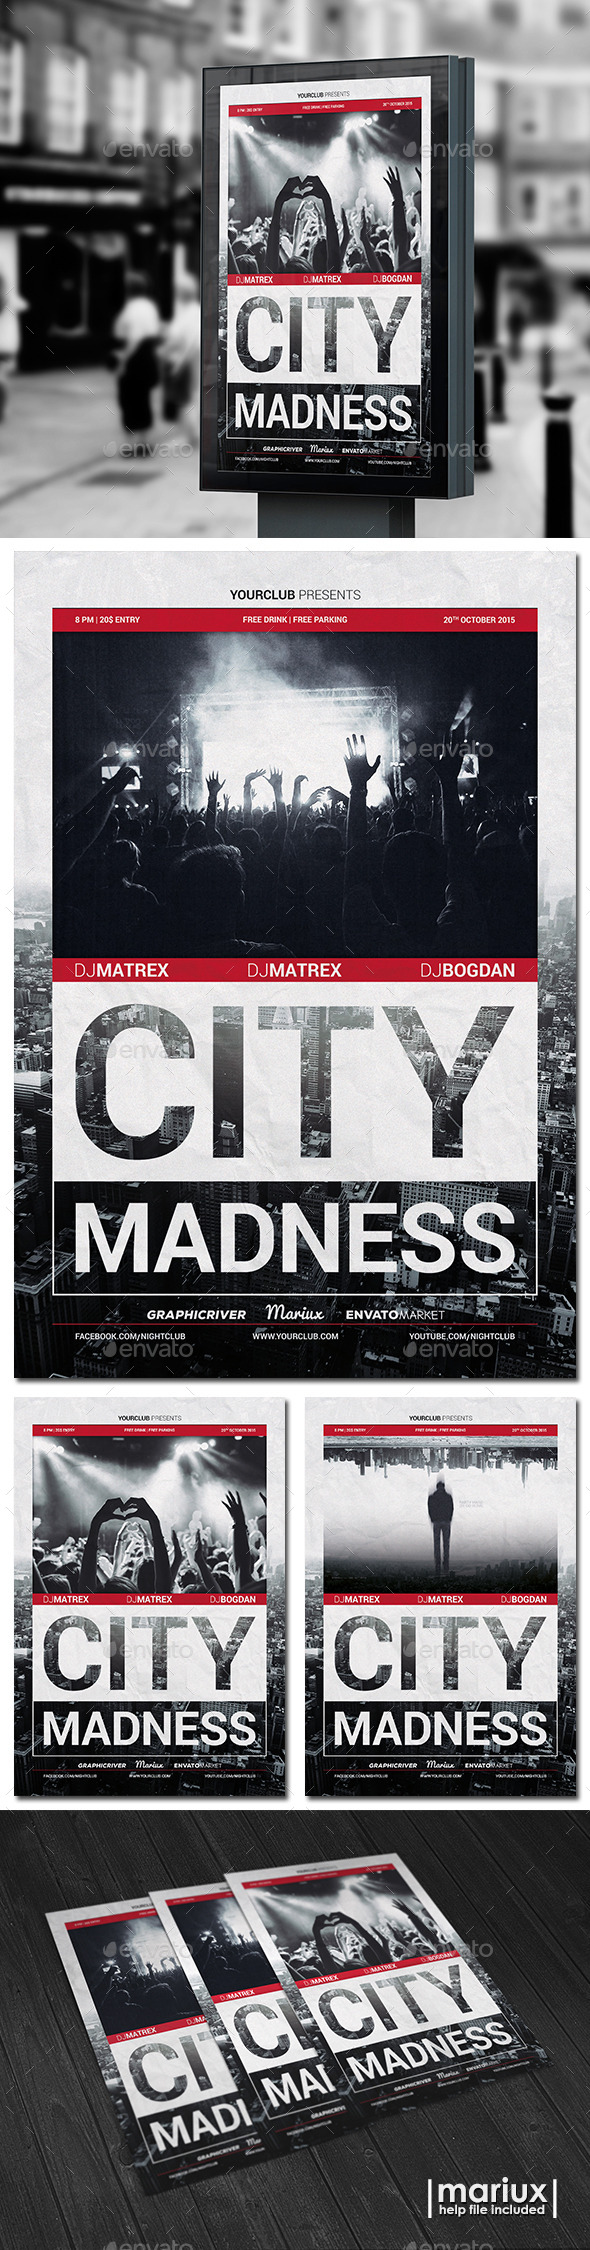 City Madness Party Flyer